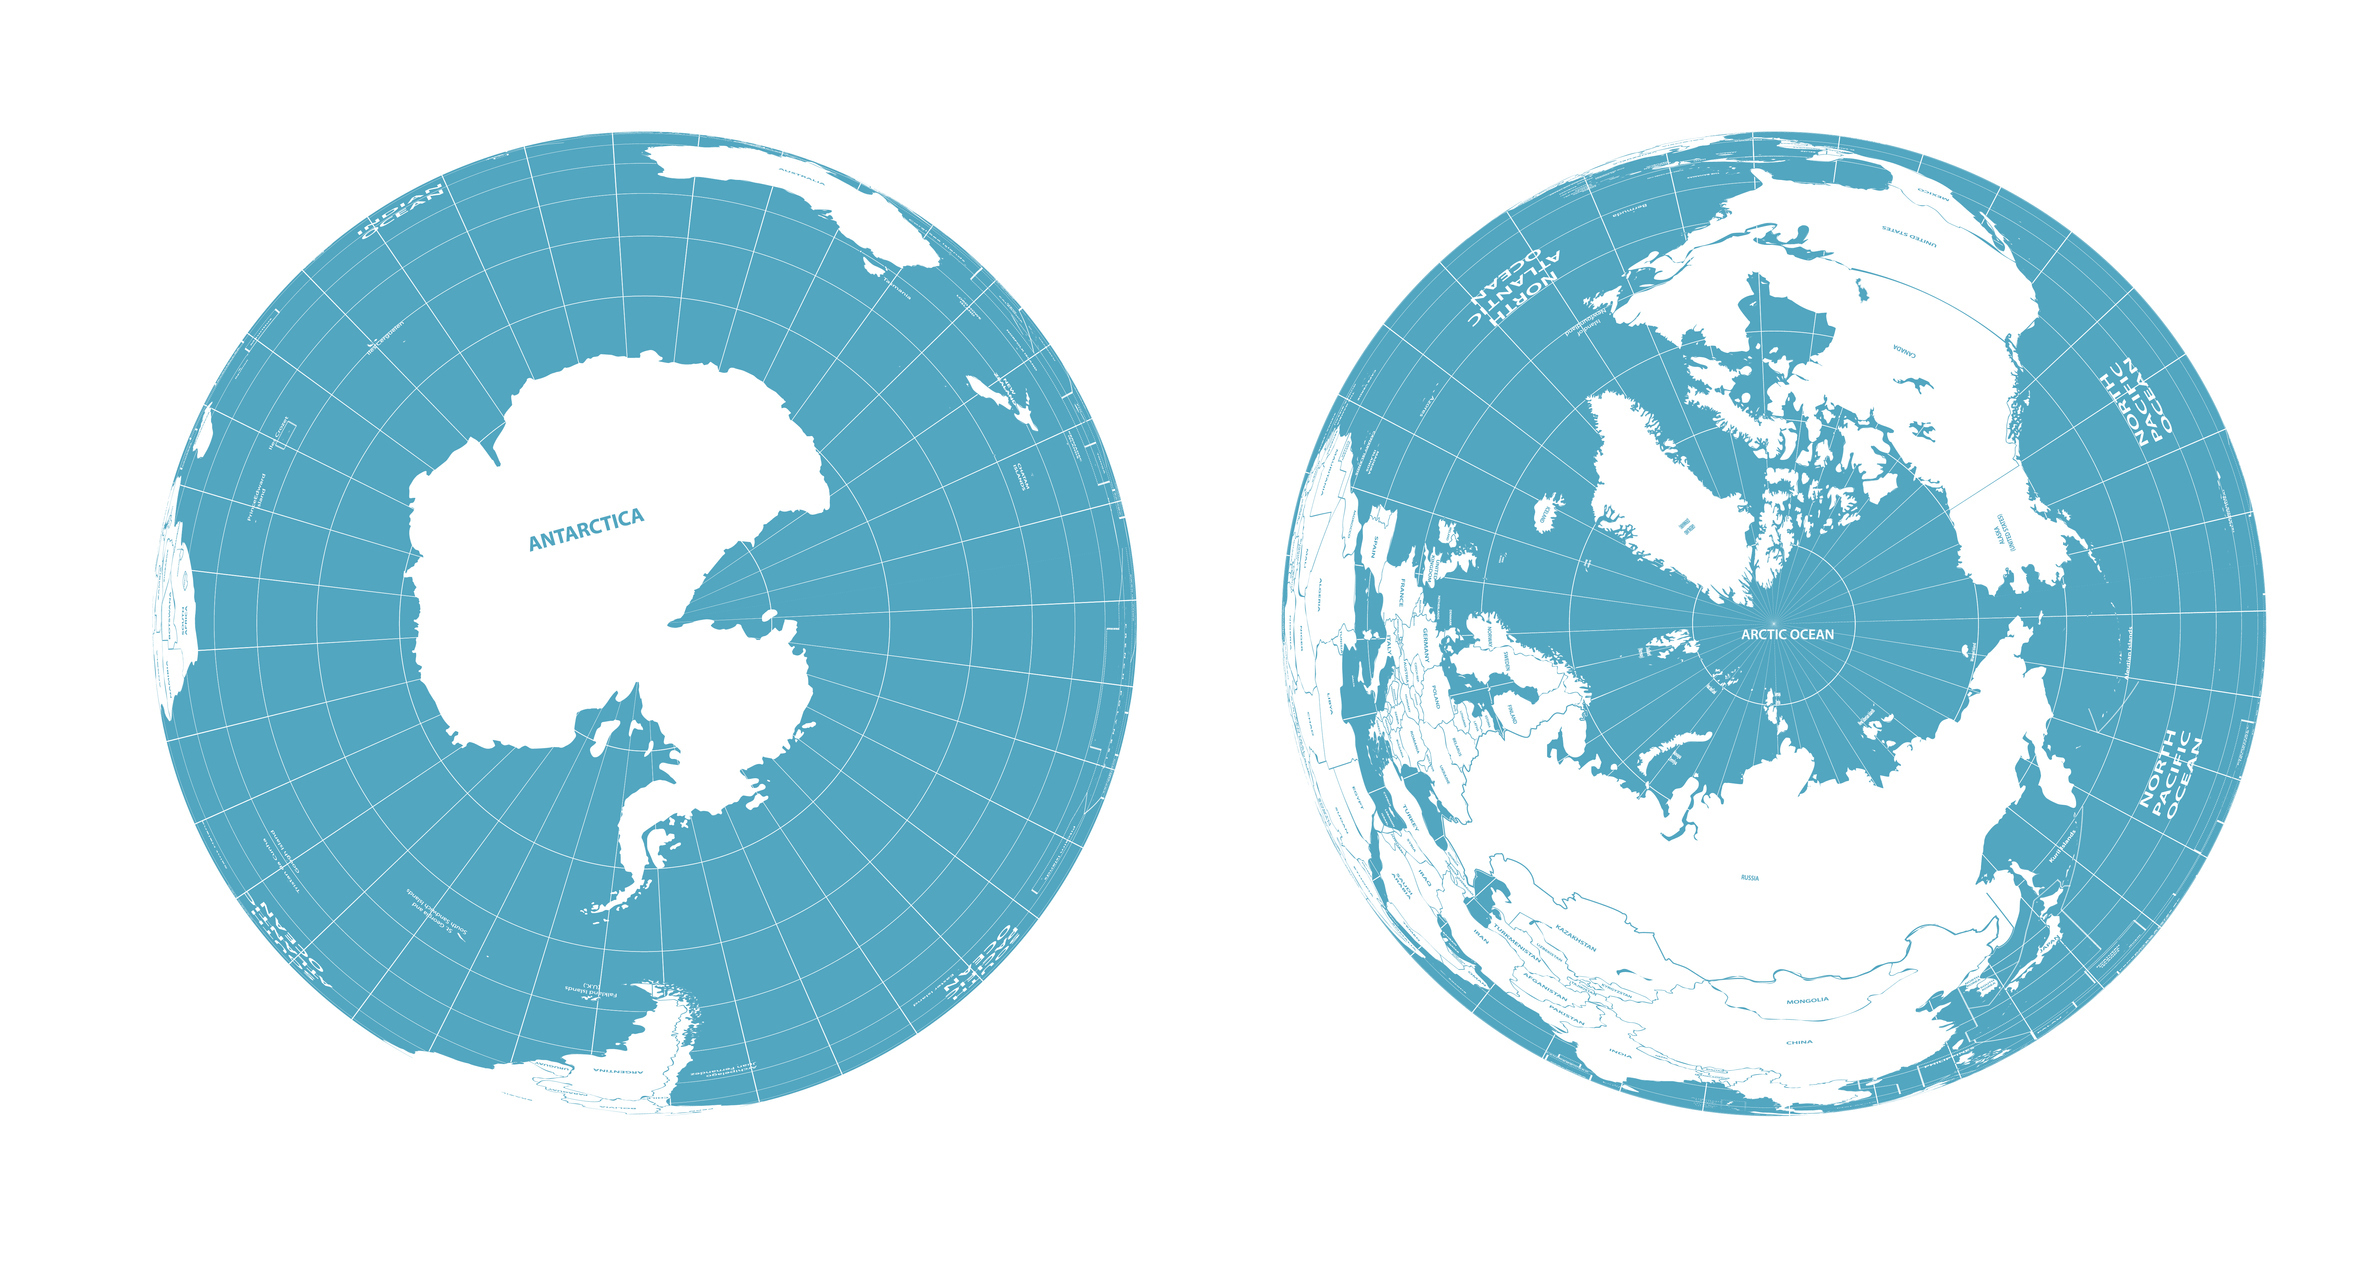 Globe Map Views of the Arctic and Antarctic. The Arctic is a frozen ocean and mostly surrounded by land. The Antarctic is different as it is an area of land surrounded by oceans.